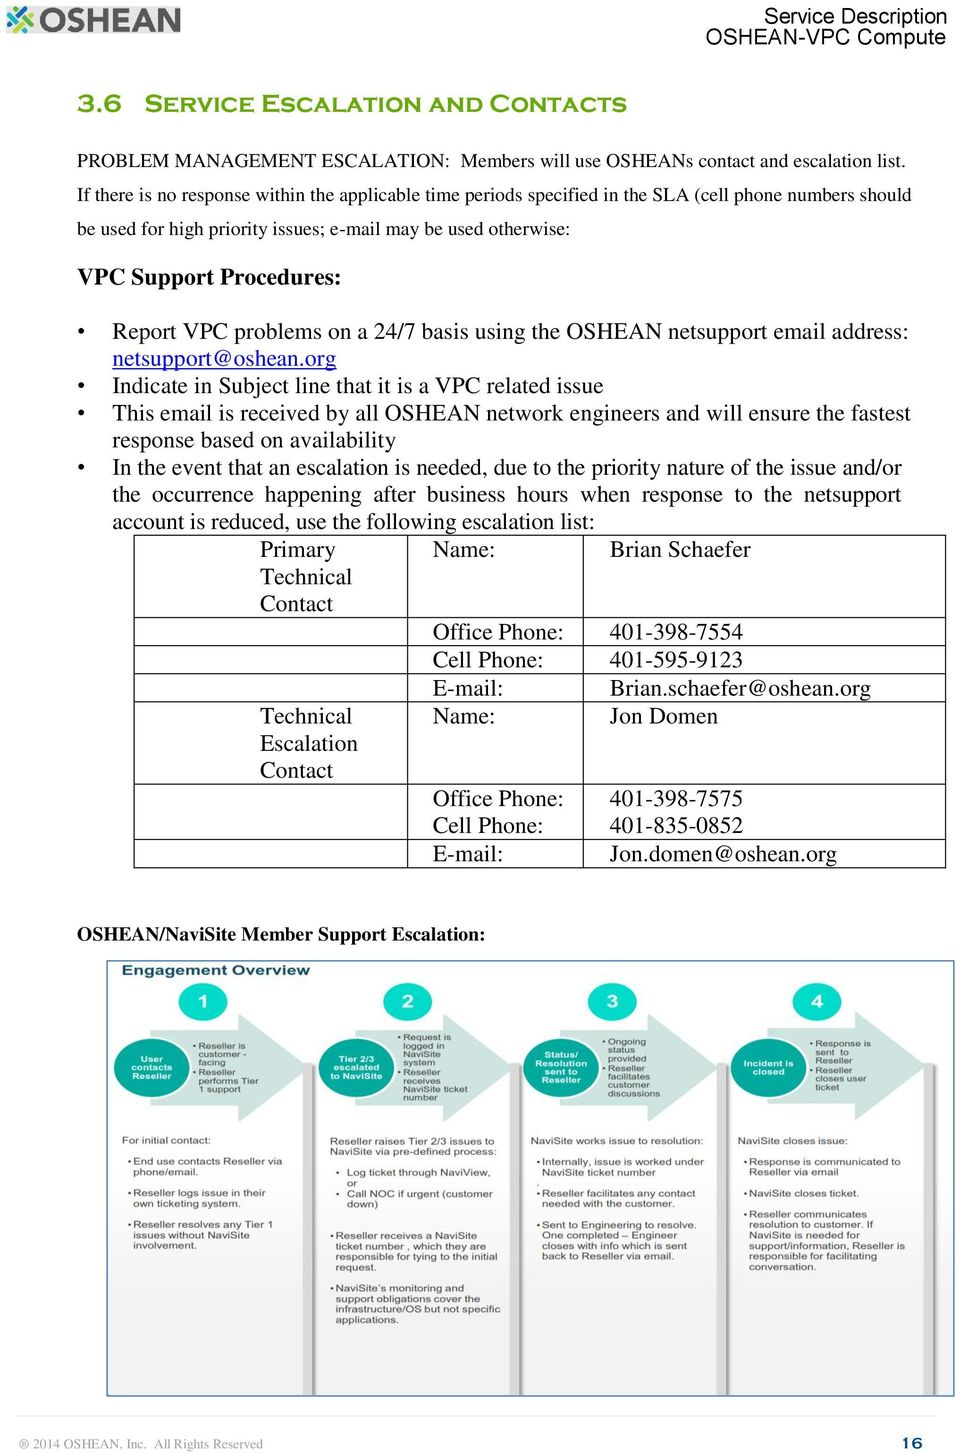 Report VPC problems on a 24/7 basis using the OSHEAN netsupport email address: netsupport@oshean.